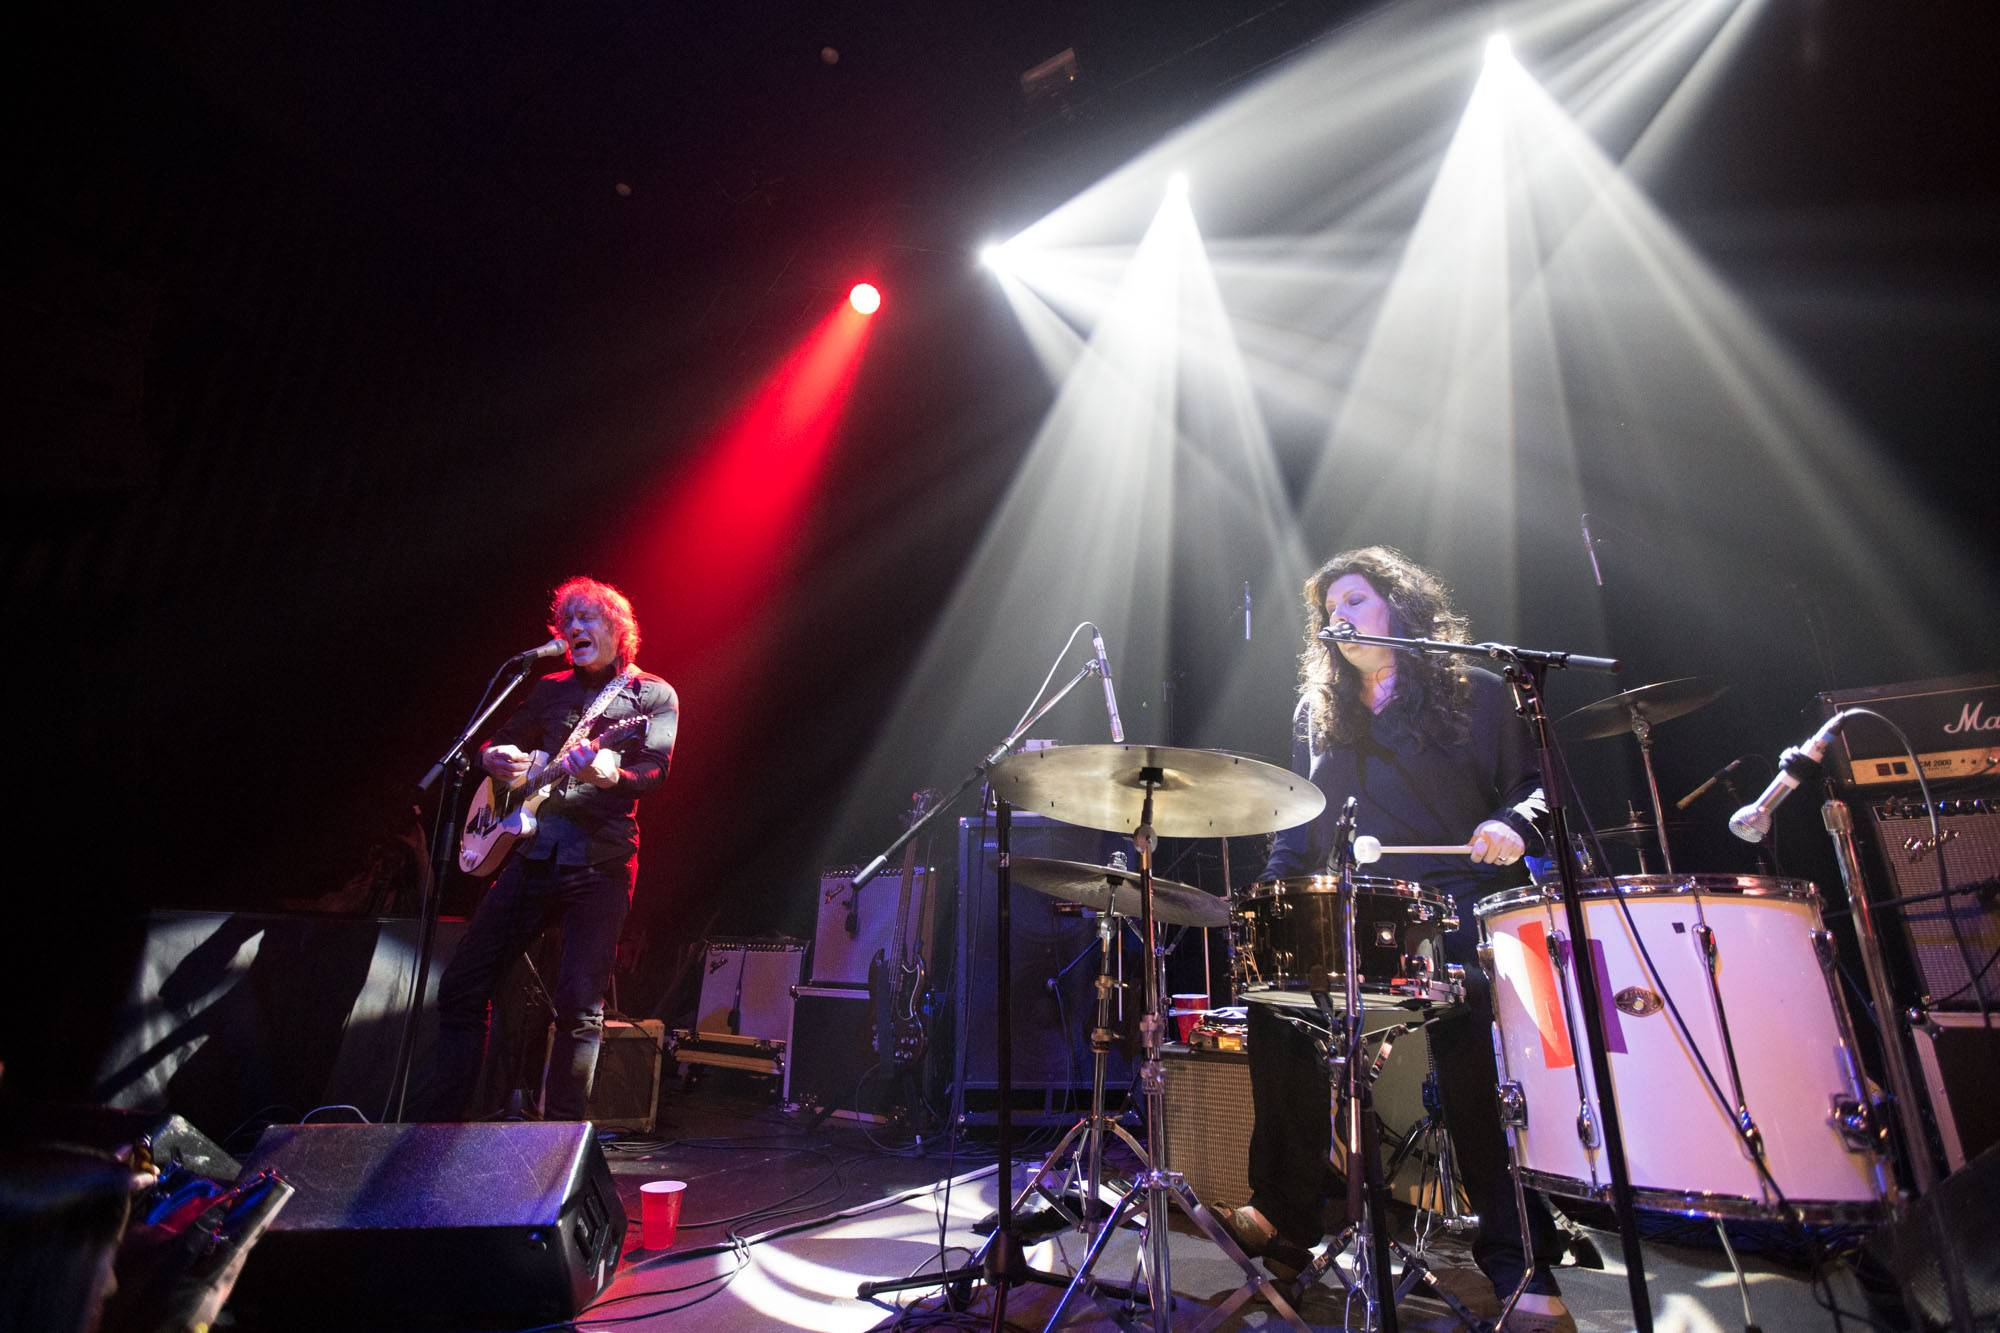 Low at the Imperial Theatre, Vancouver, June 17 2017. Kirk Chantraine photo.